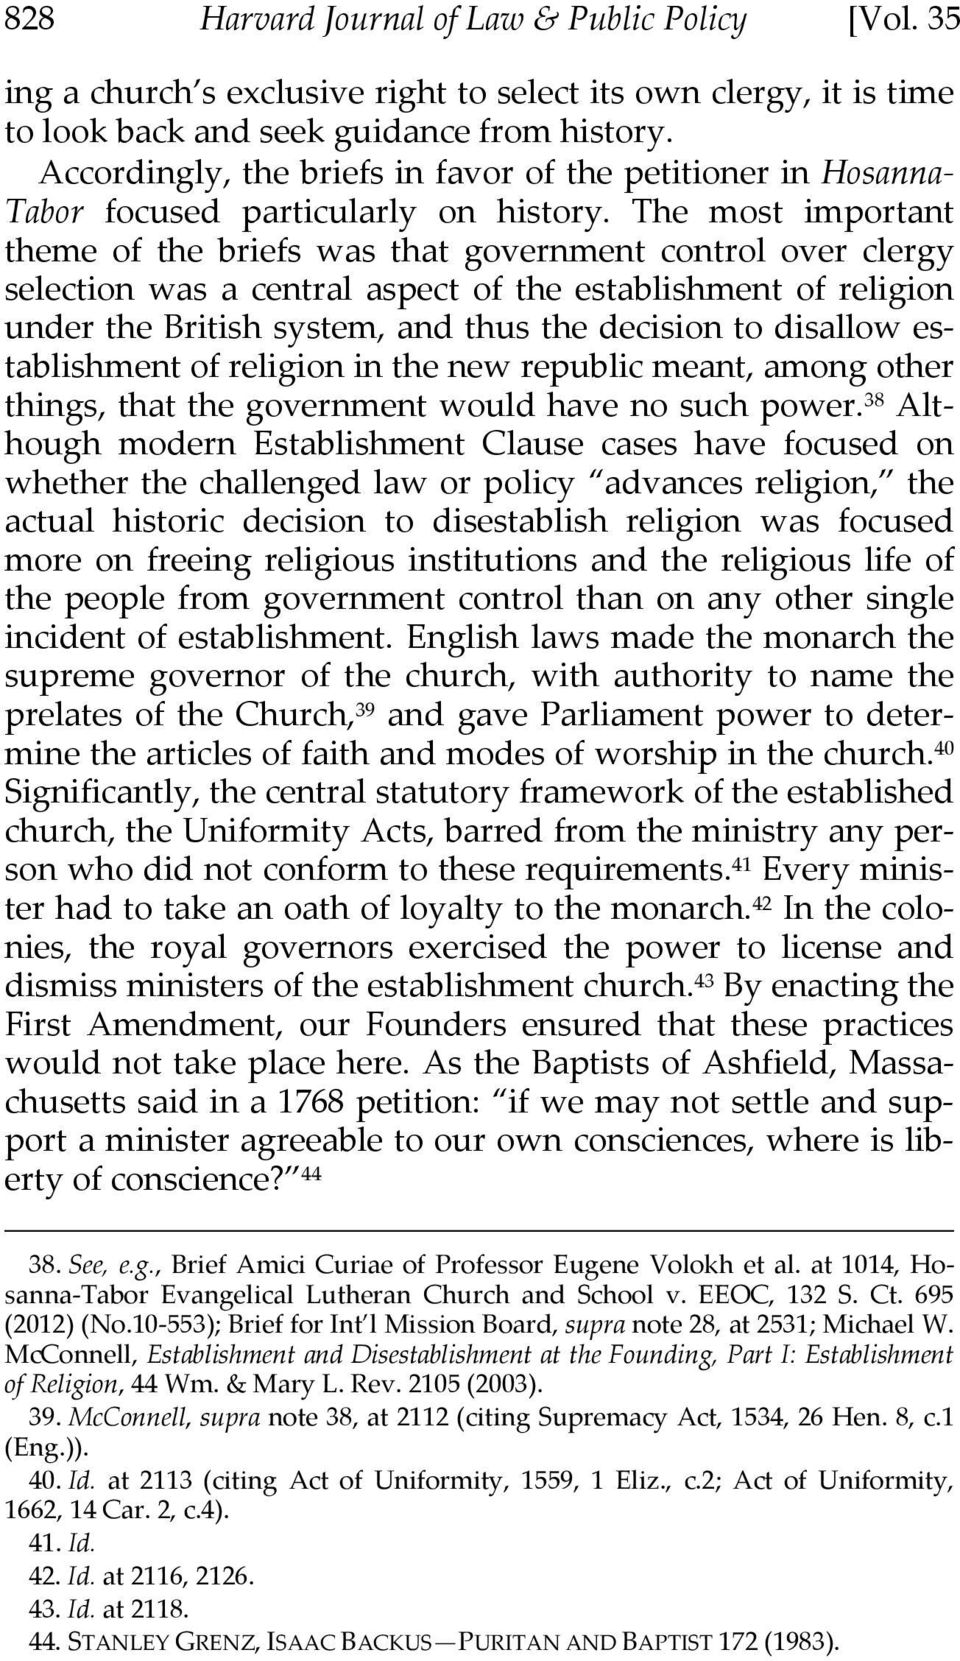 The most important theme of the briefs was that government control over clergy selection was a central aspect of the establishment of religion under the British system, and thus the decision to